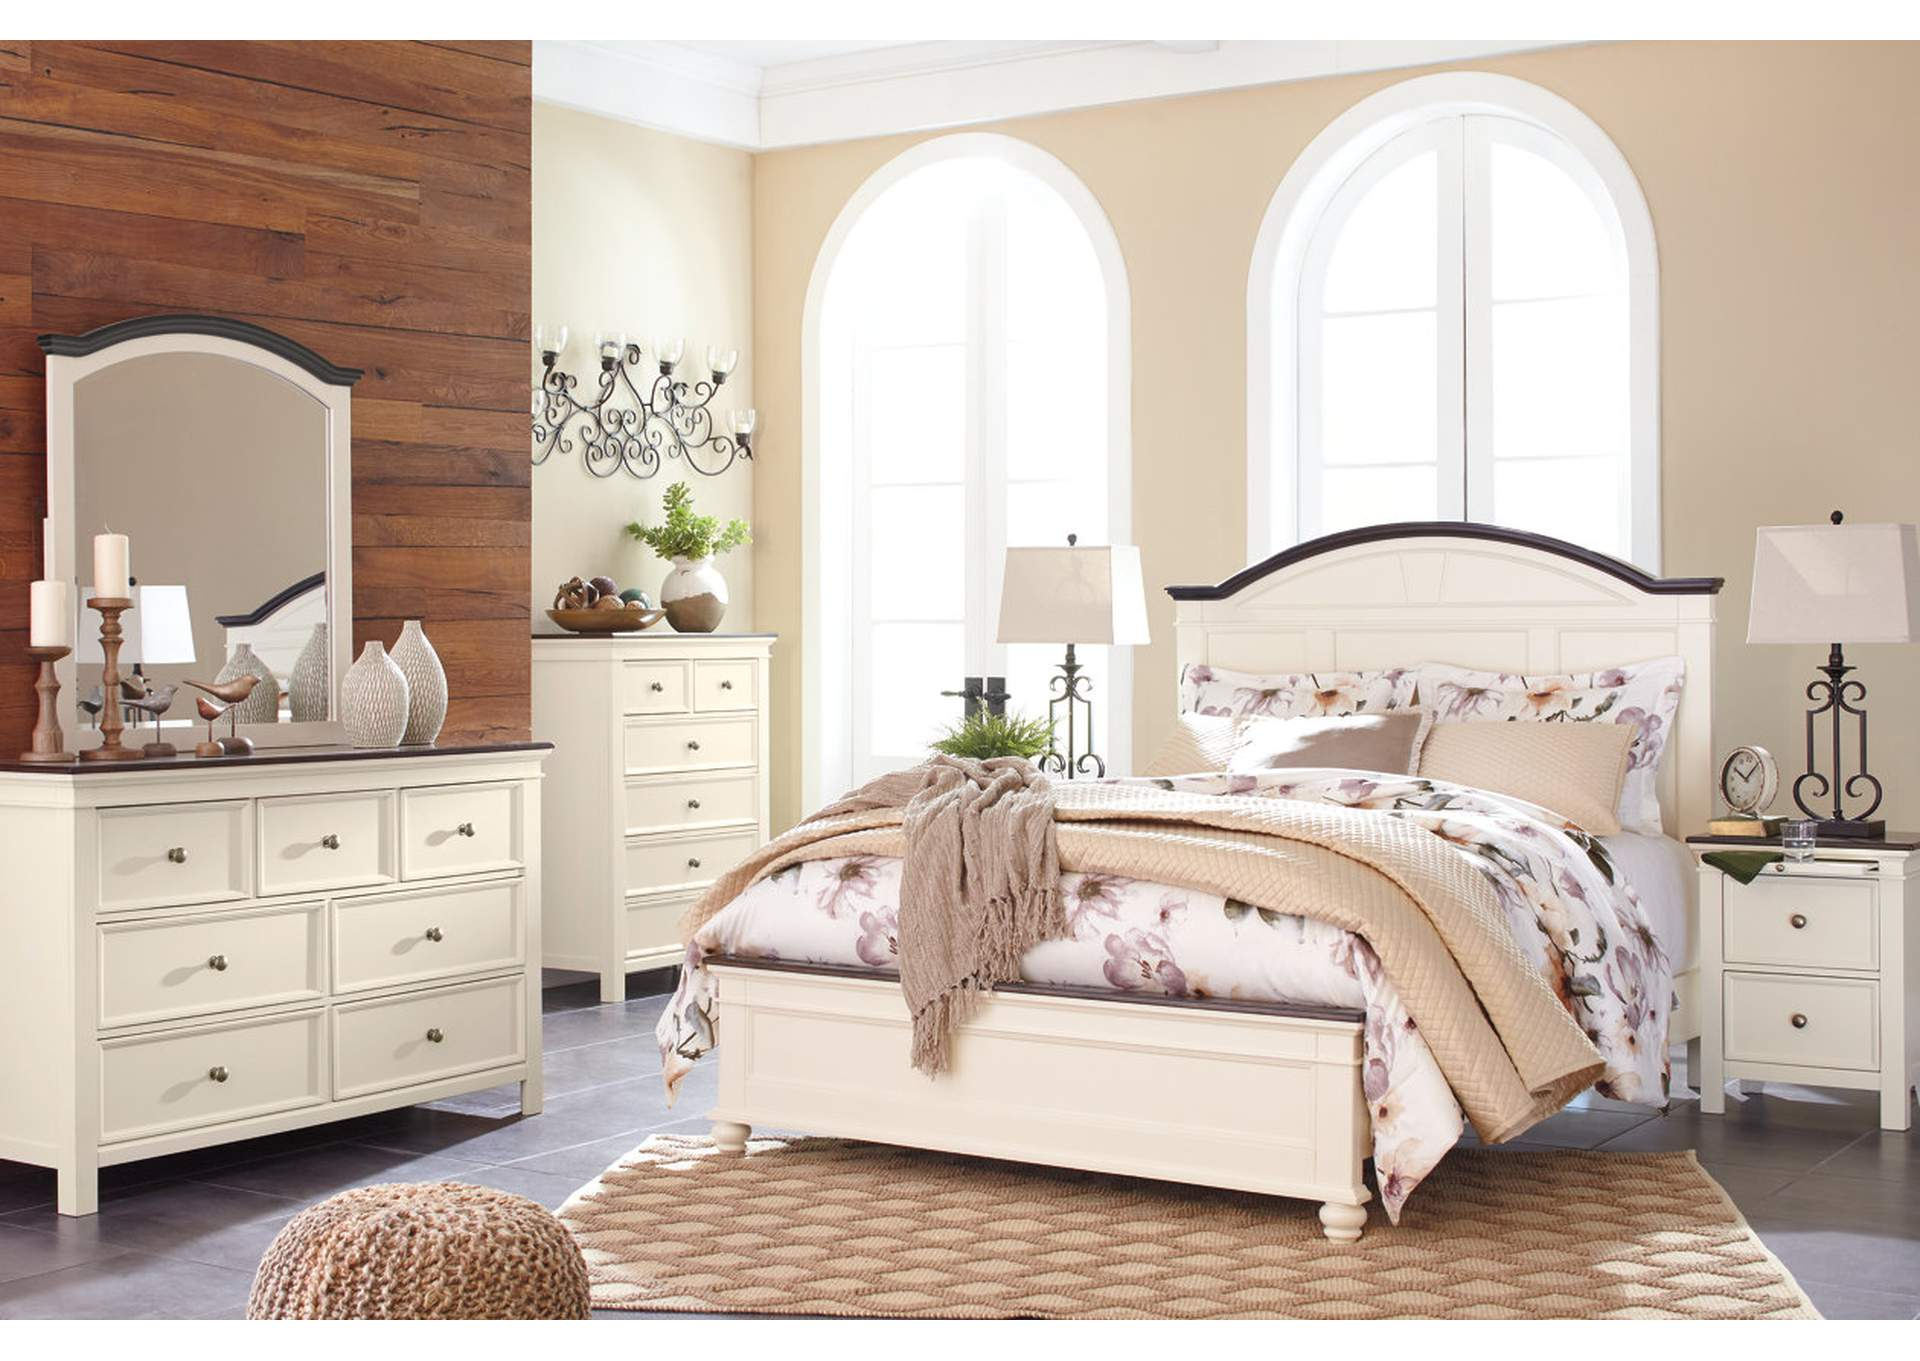 Woodanville White/Brown Queen Panel Bed w/Dresser, Mirror & Nightstand,Signature Design By Ashley